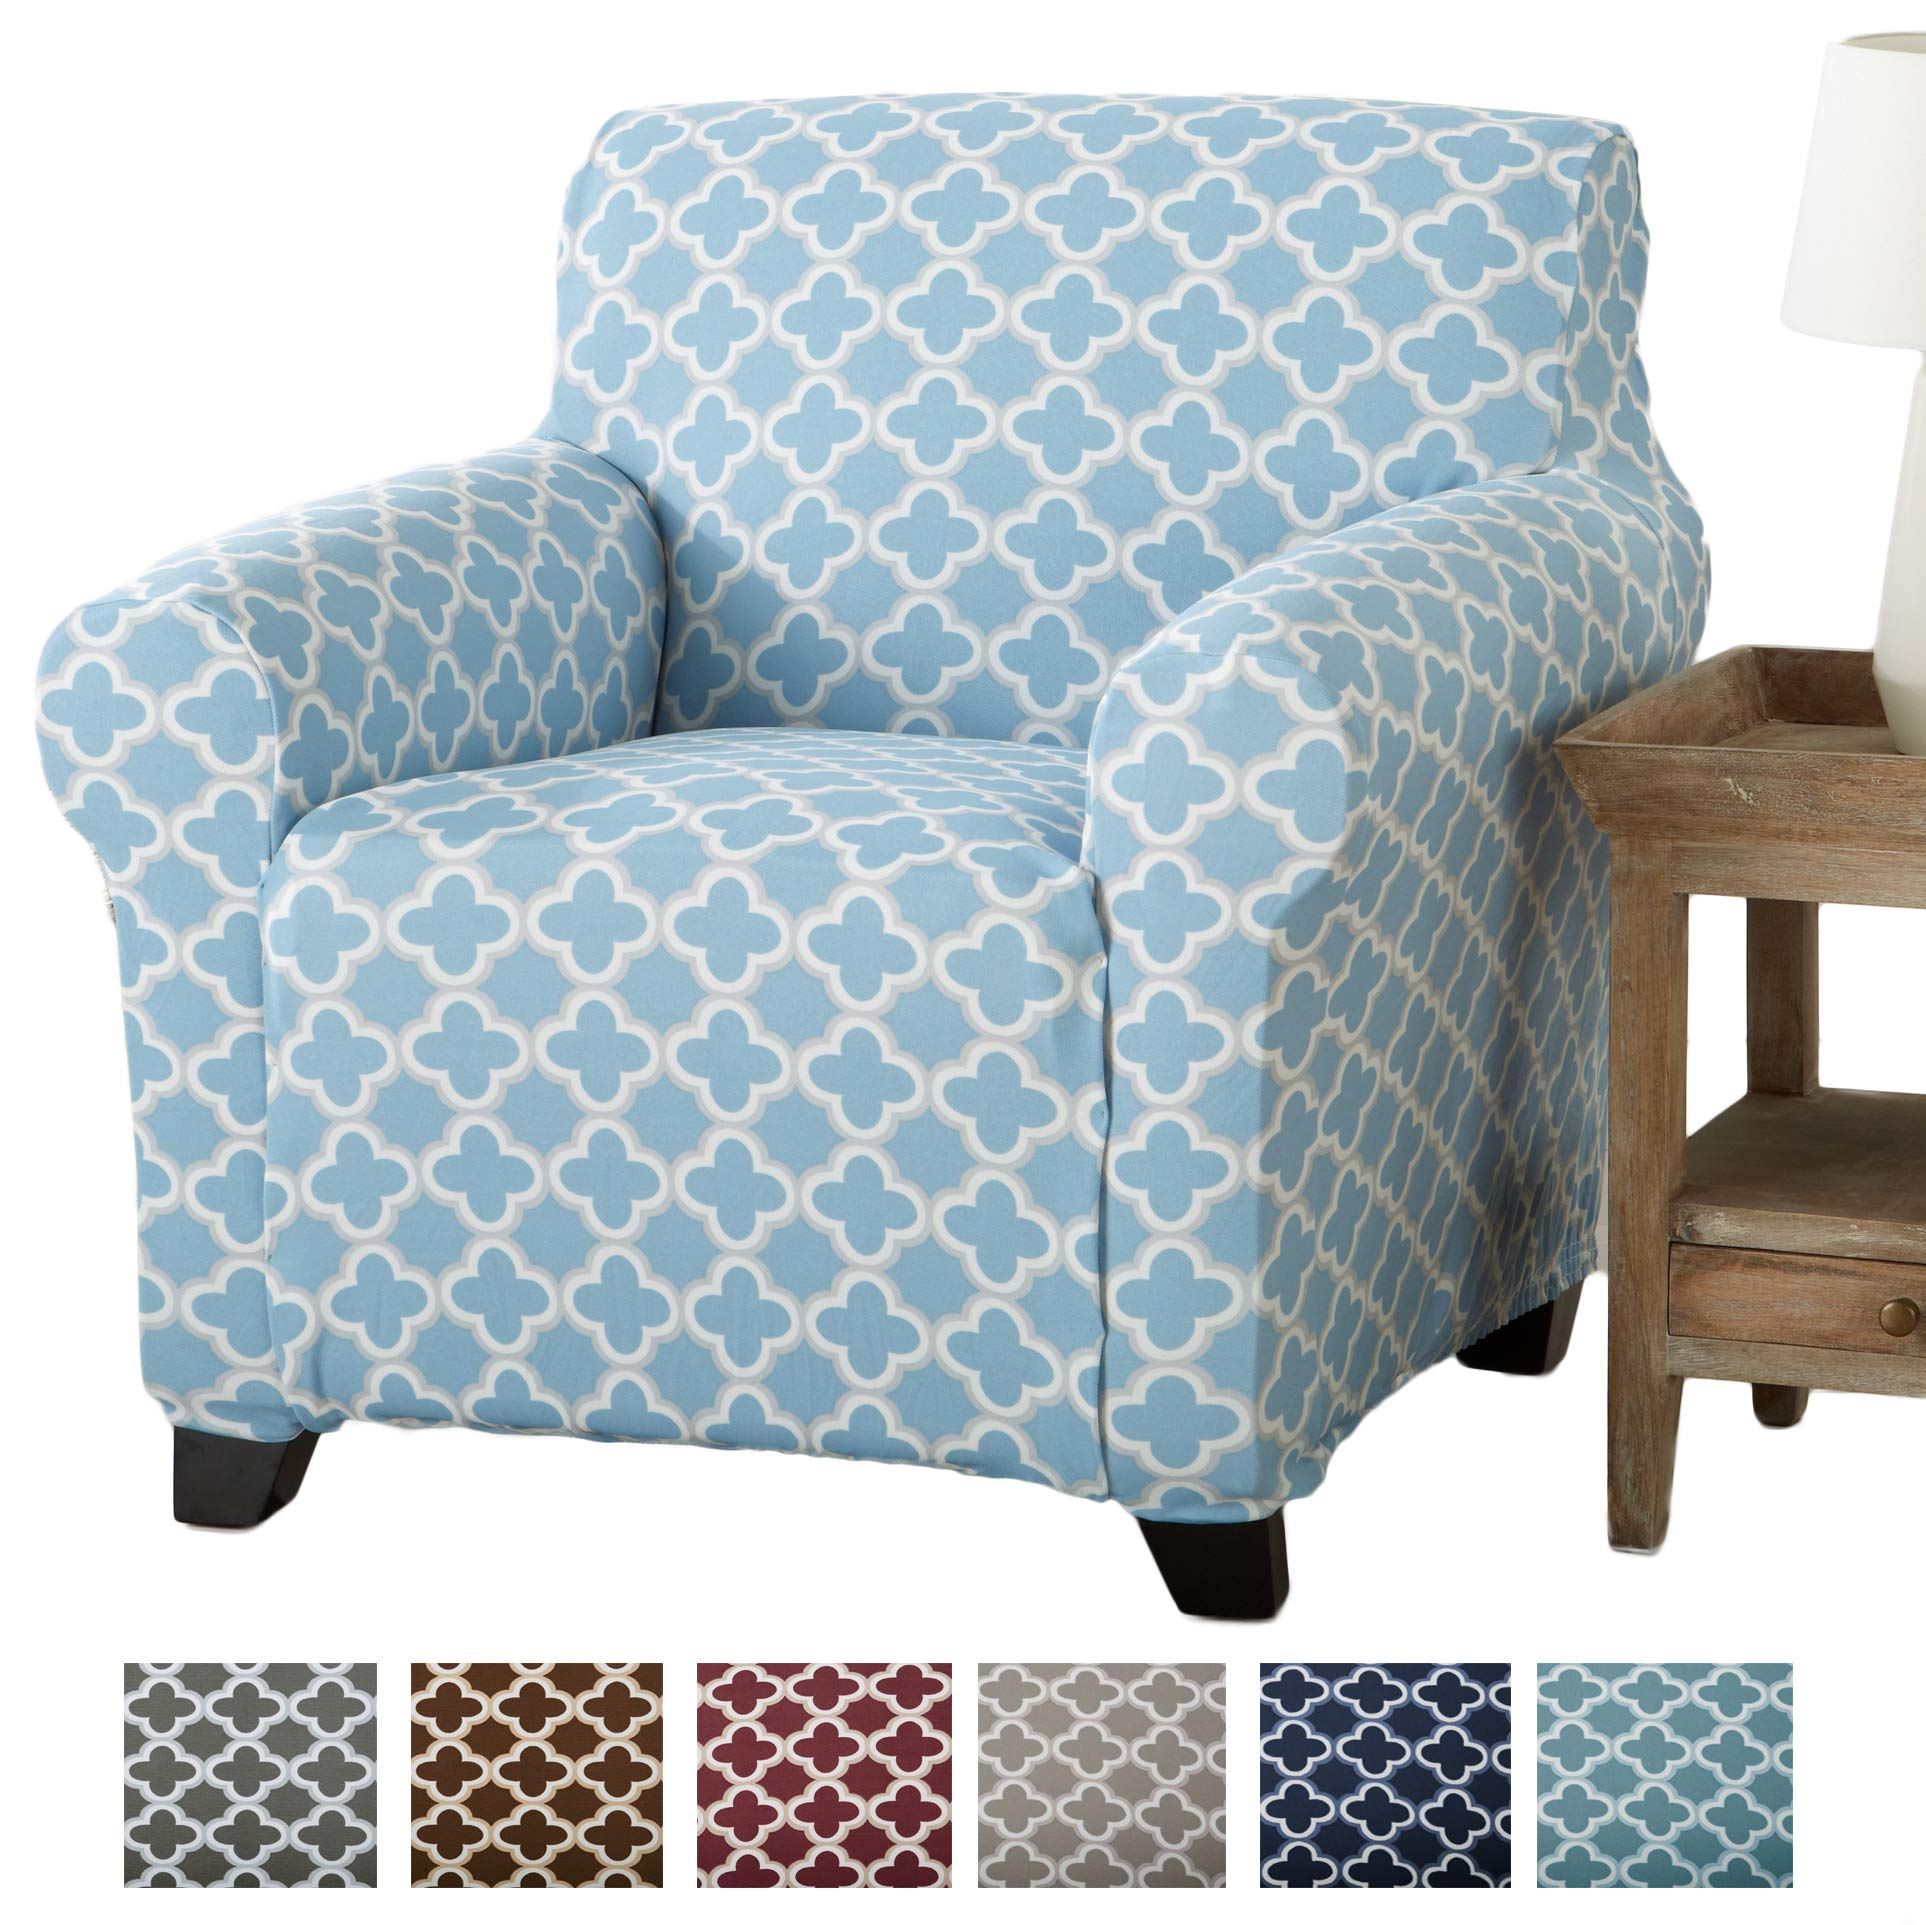 armless chair covers for patterns blogs workanyware co uk u2022 rh blogs workanyware co uk